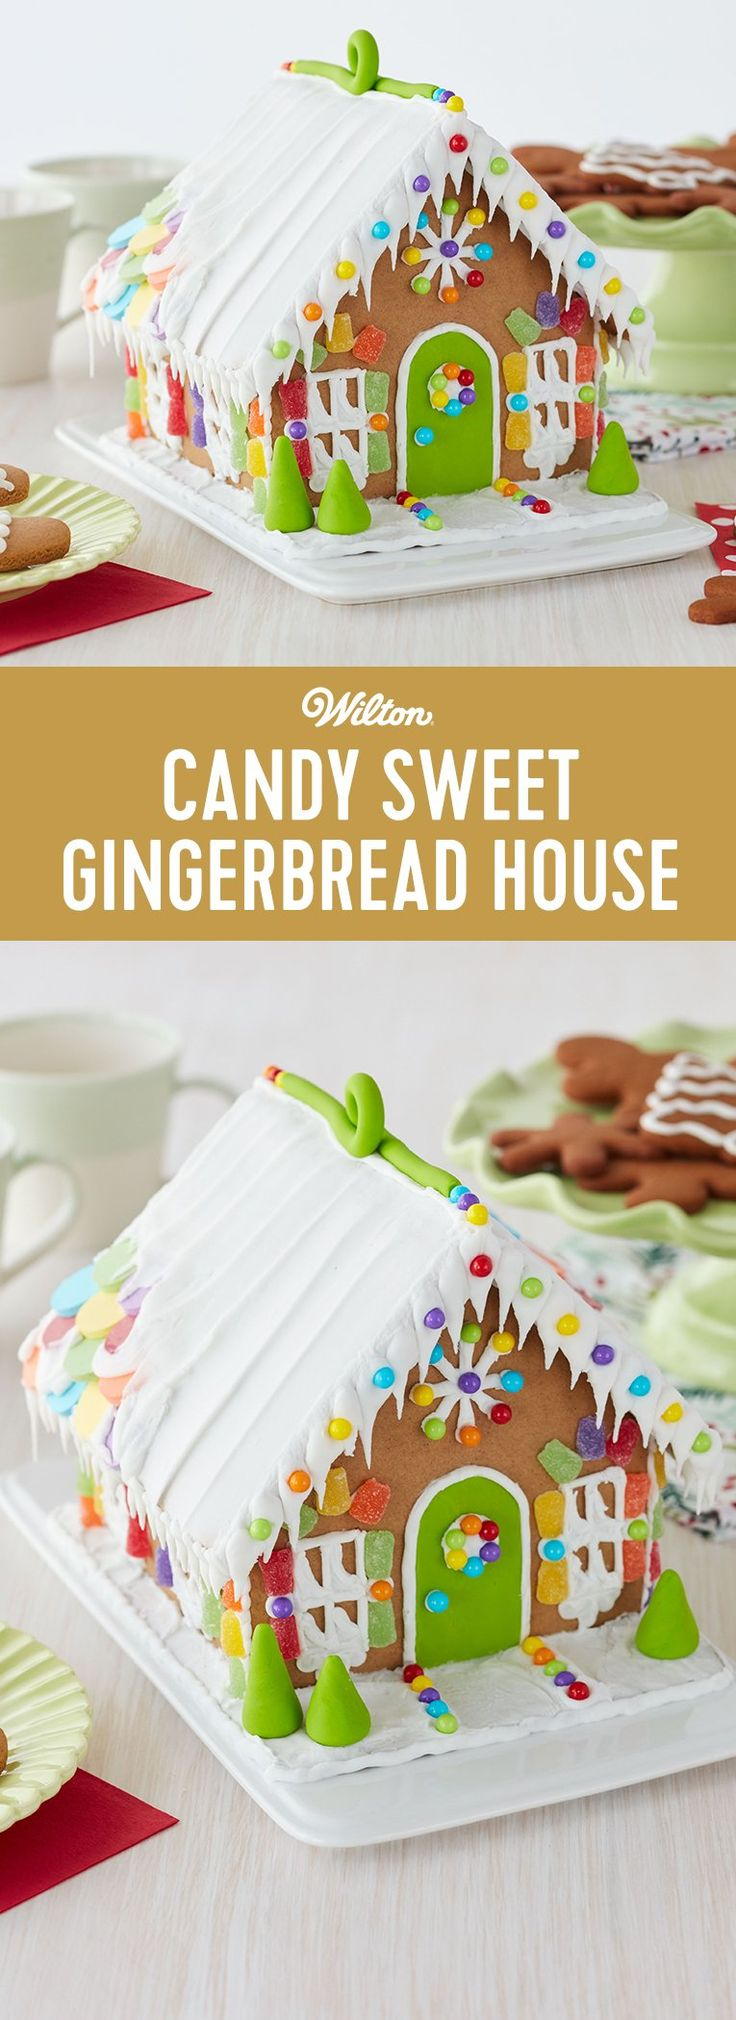 Candy Sweet Gingerbread House - Trimmed with lots of colorful candy and bright green fondant, this Gingerbread House Kit has the designs that add excitement to your Christmas celebrations. After all, everyone loves all that candy! Making a candy sweet gingerbread house is great fun for kids and adults alike!